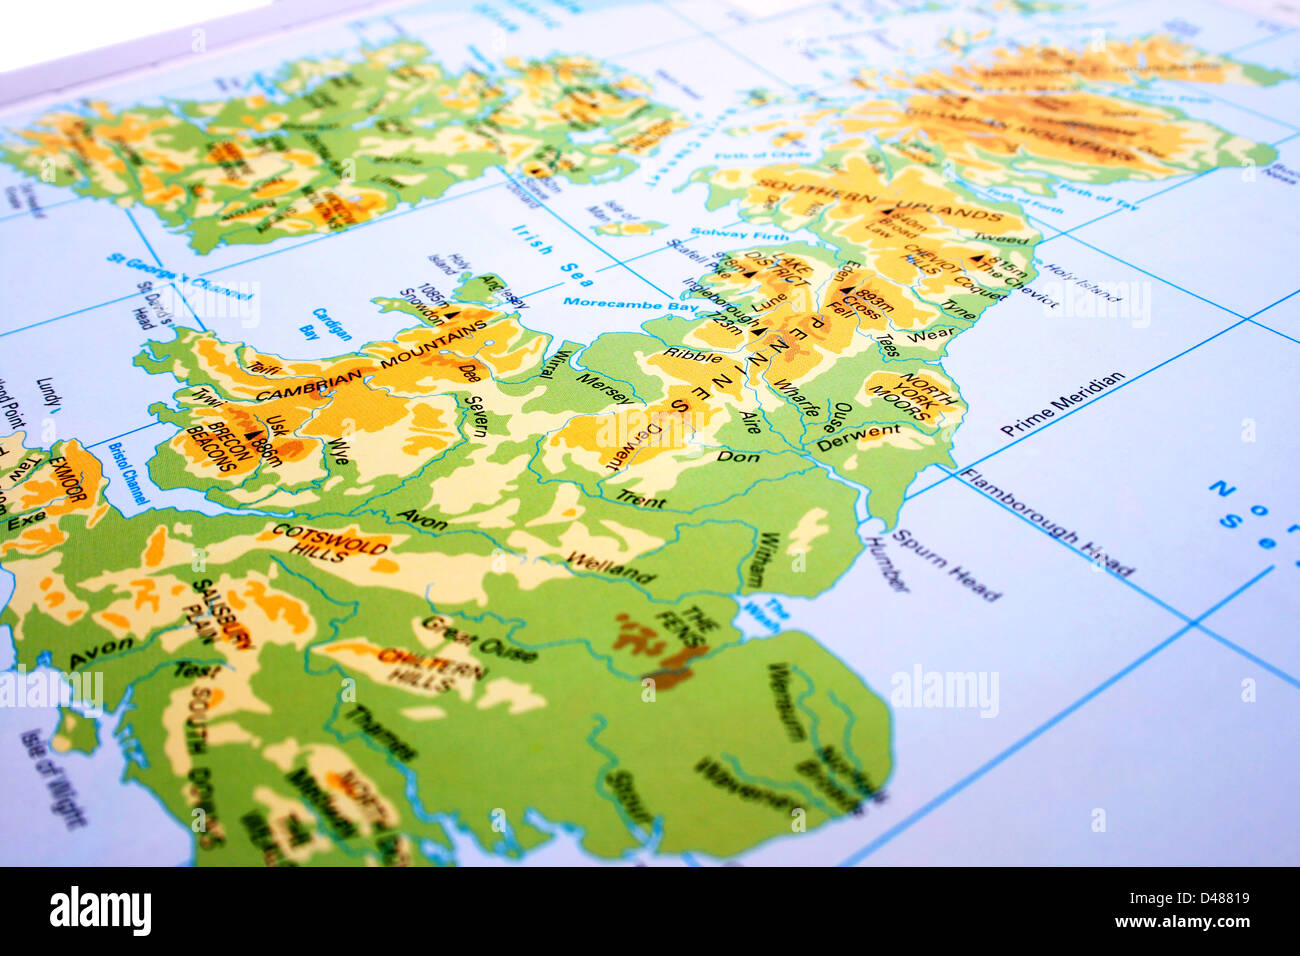 Map Of Uk Mountains And Rivers.United Kingdom Map Mountains Rivers Stock Photo 54271653 Alamy